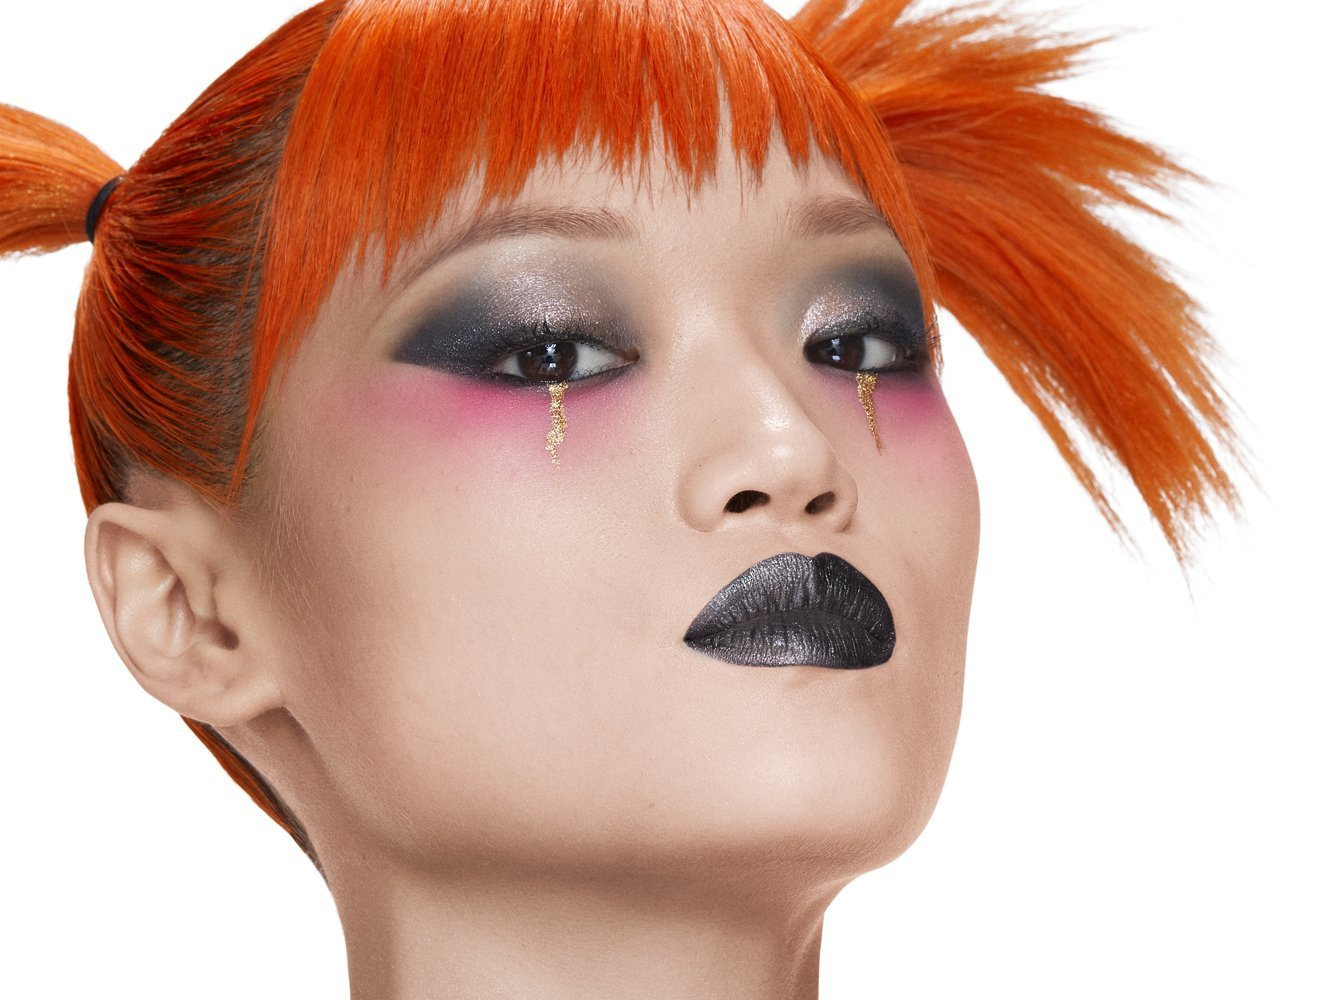 Attribution: [Kitty, an Asian model, is wearing a silver and black eye shadow with pink eye shadow under her eyes and golden tear drops. She is wearing black shimmer on her lips and her orange hair is in pig tails. She is looking solemnly into the camera.] Via Haus Labs.